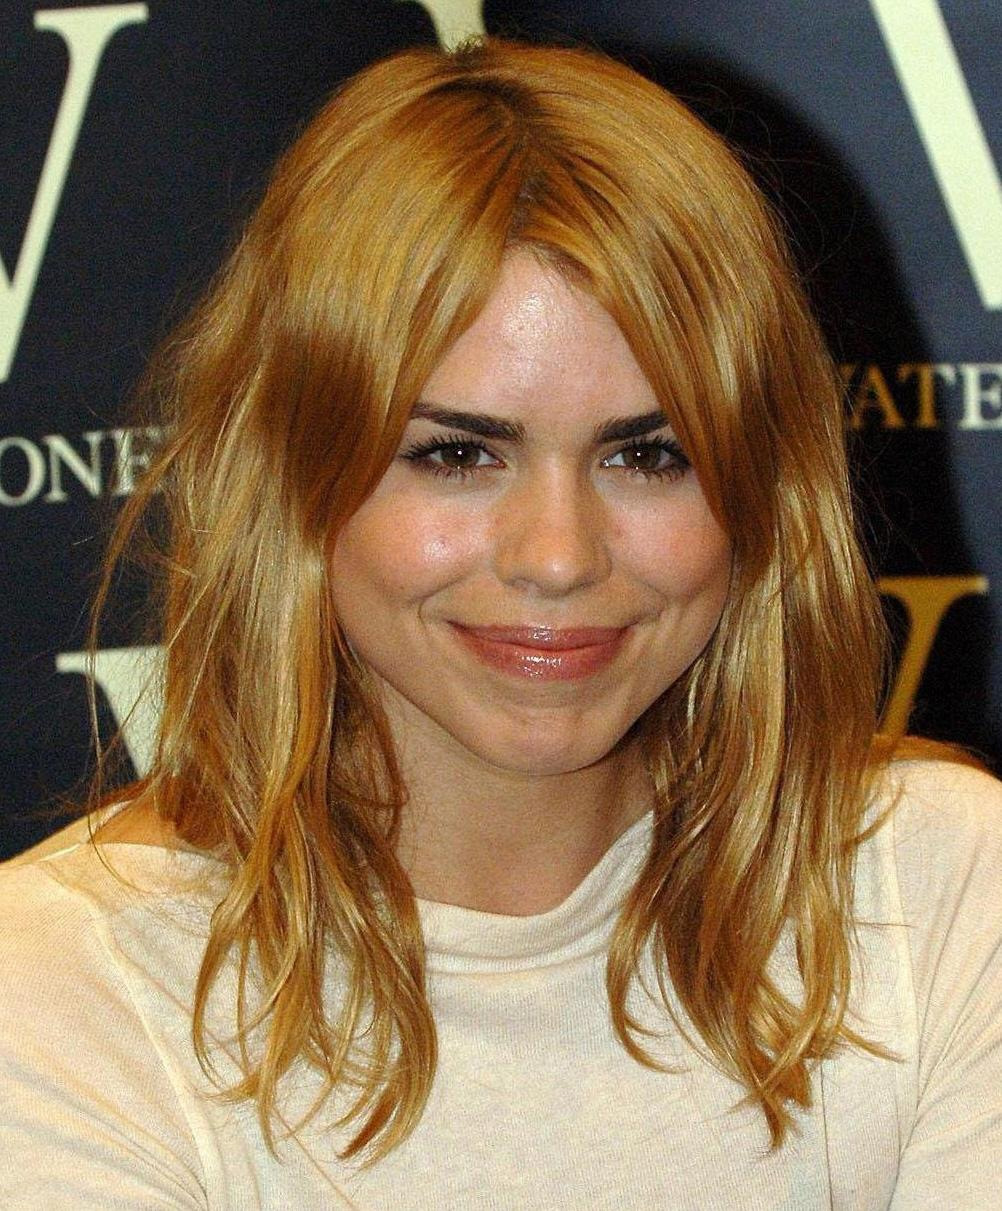 Billie Piper suffers temporary blindness